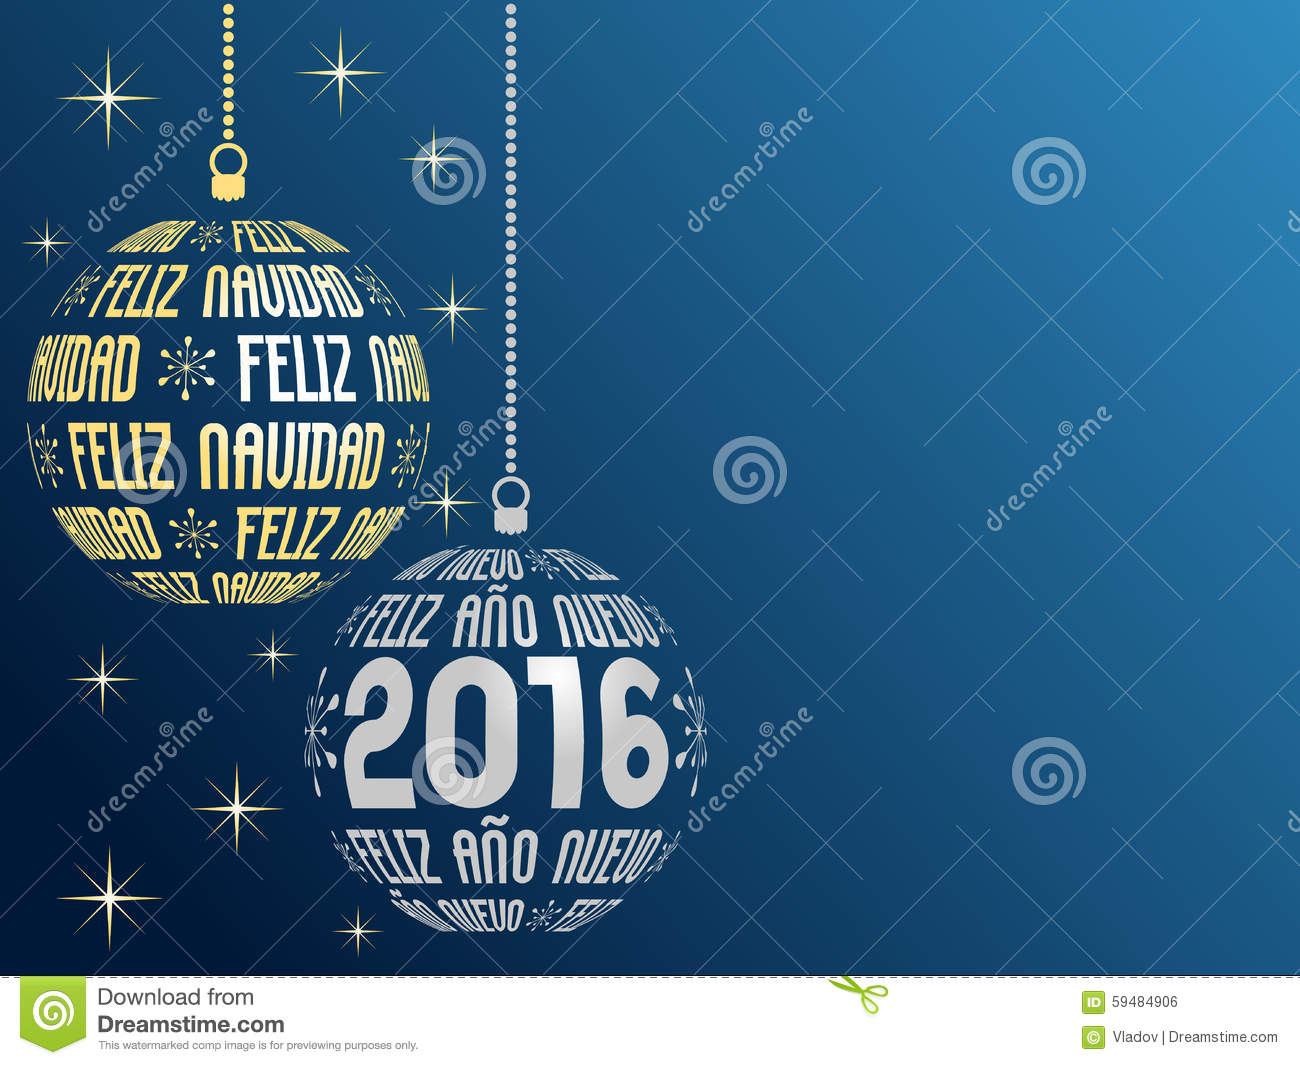 spanish merry christmas and happy new year 2016 background - Merry Christmas And Happy New Year In Spanish